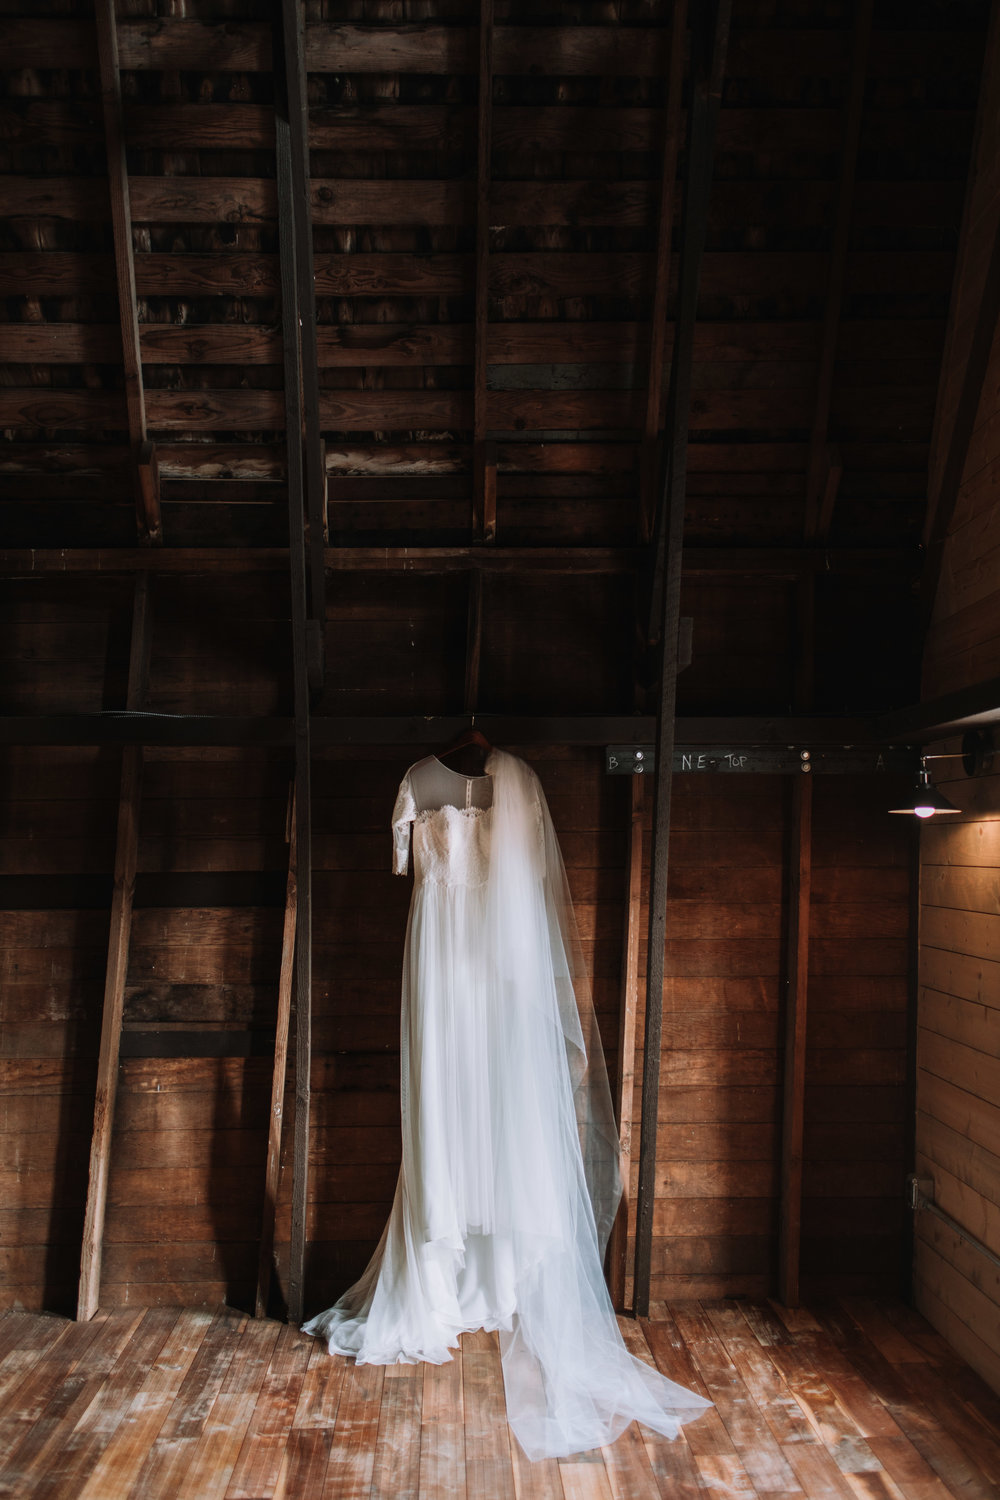 adam sophie red barn wedding arlington washington foggy day pnw wedding gown photo cedar wall